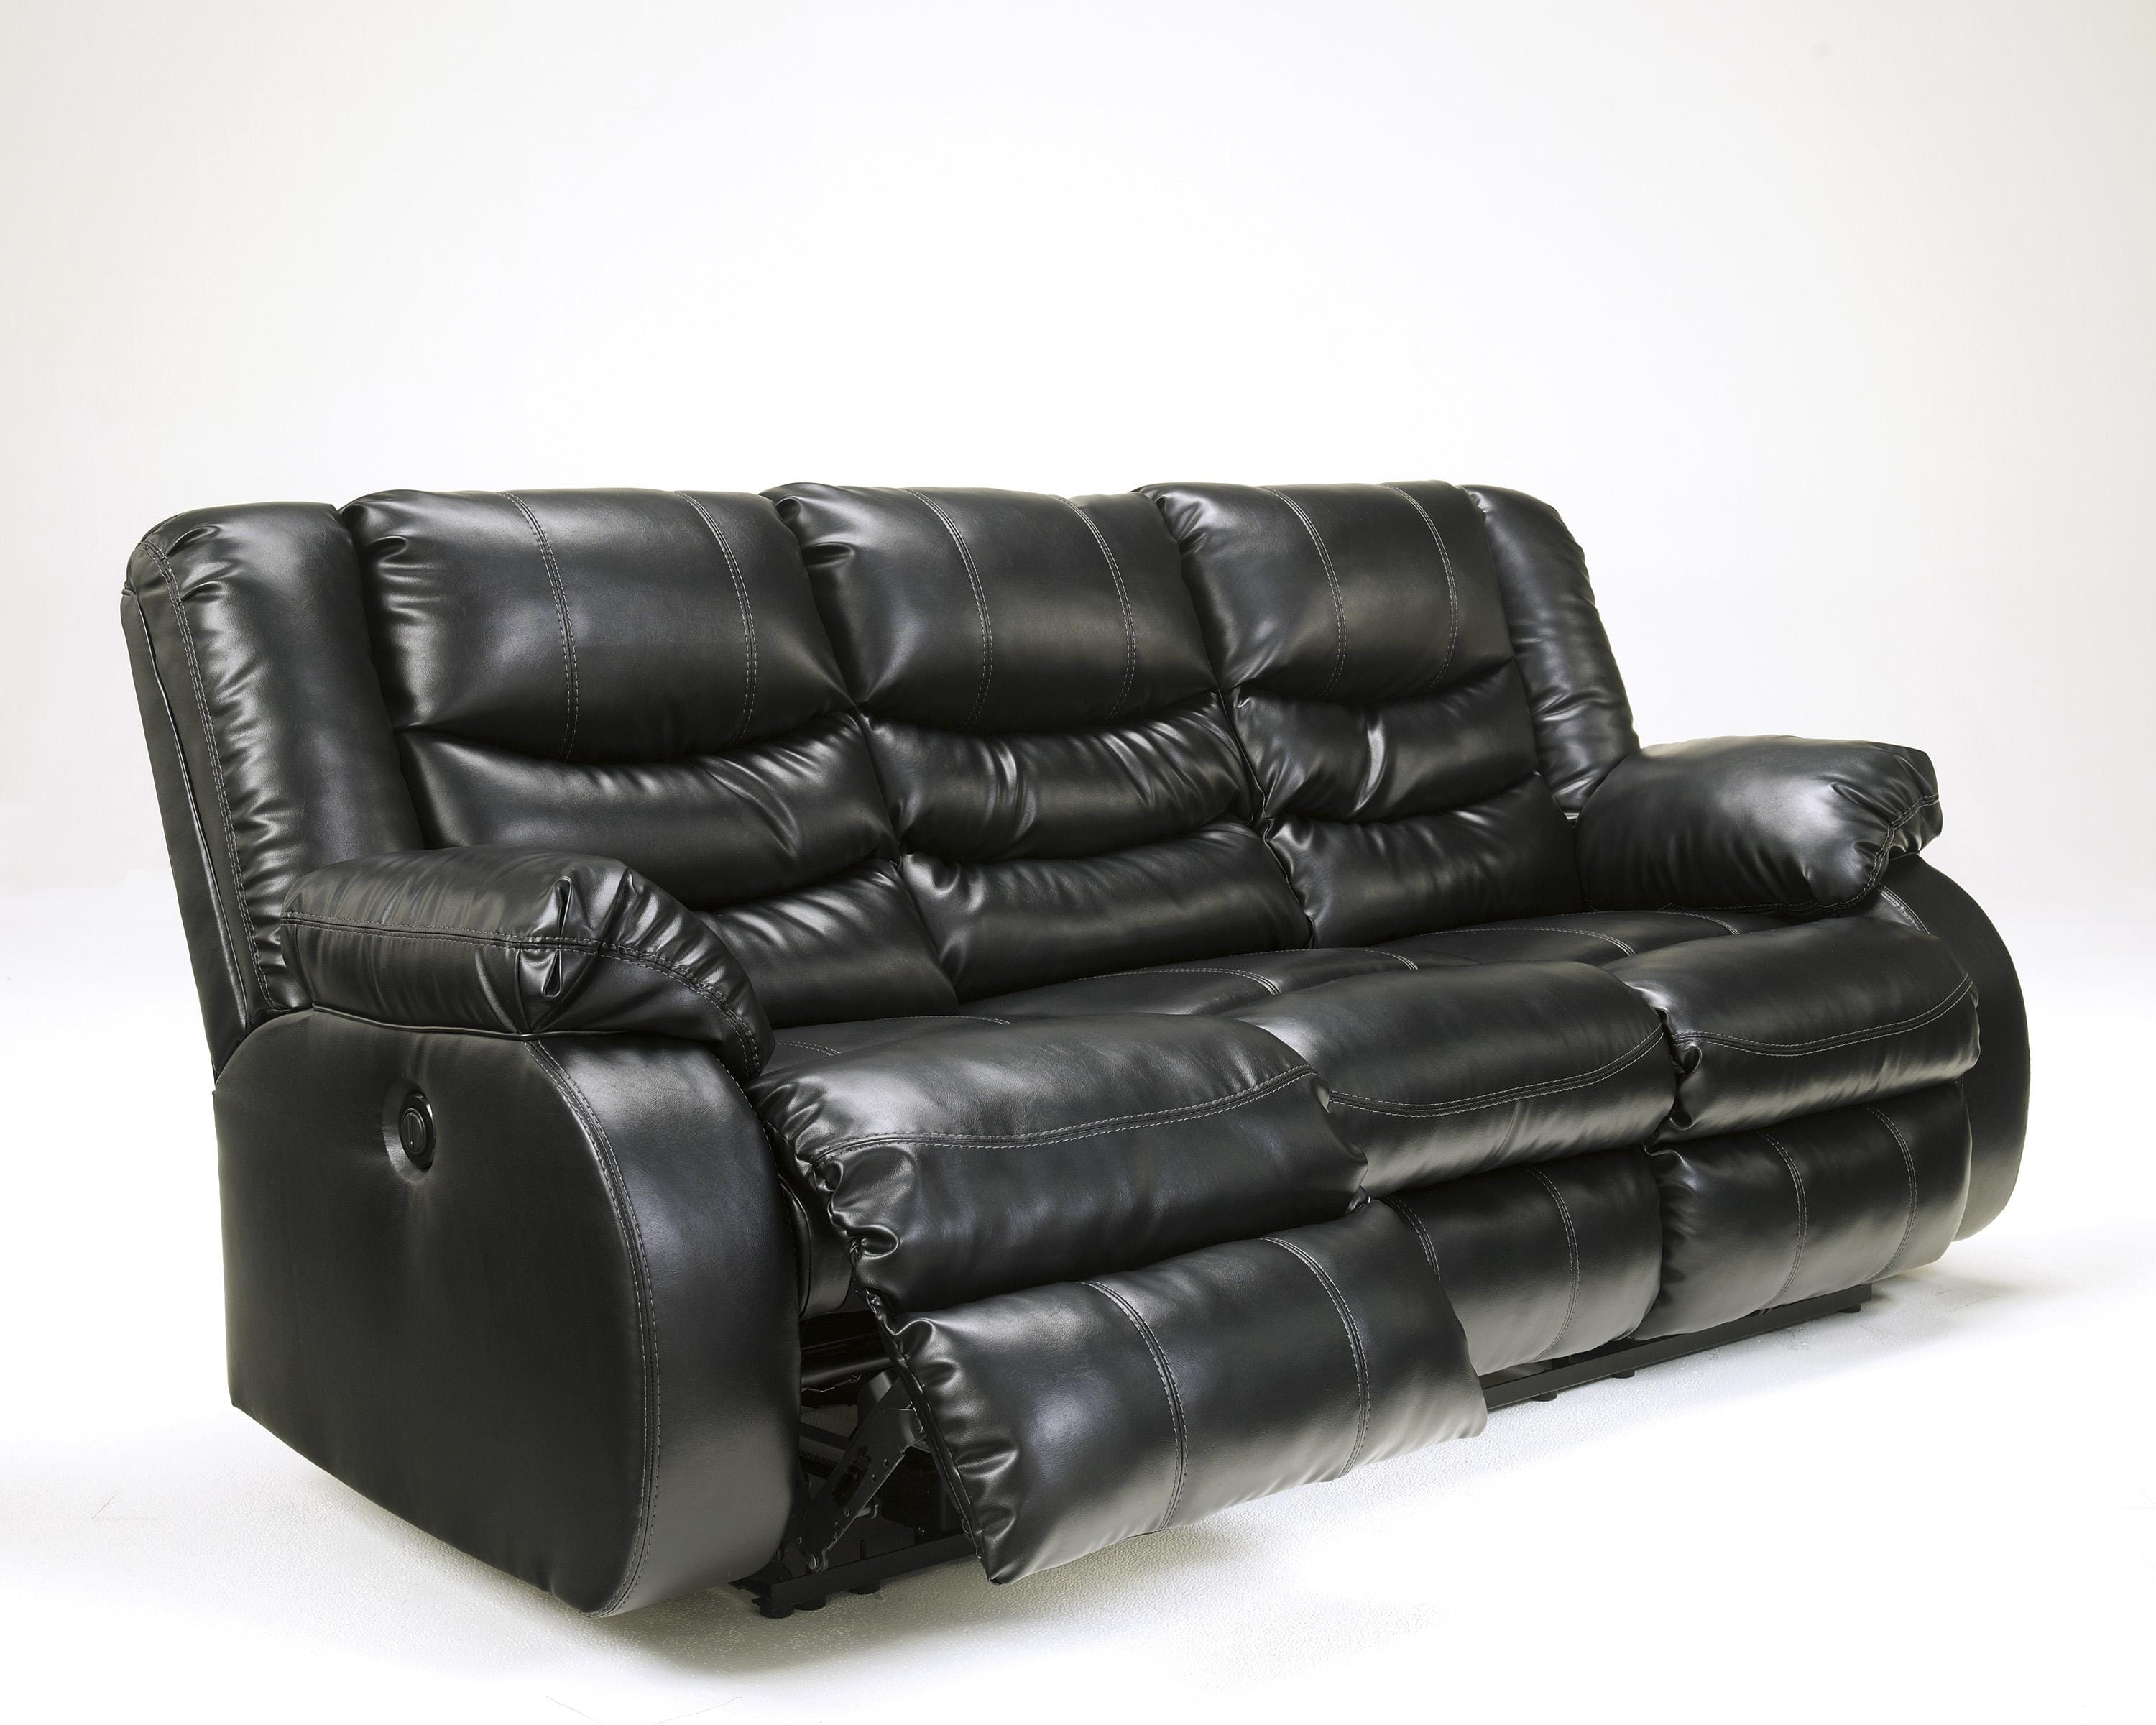 sc 1 st  Futonland & Black Leather Reclining Sofa by Ashley Furniture islam-shia.org